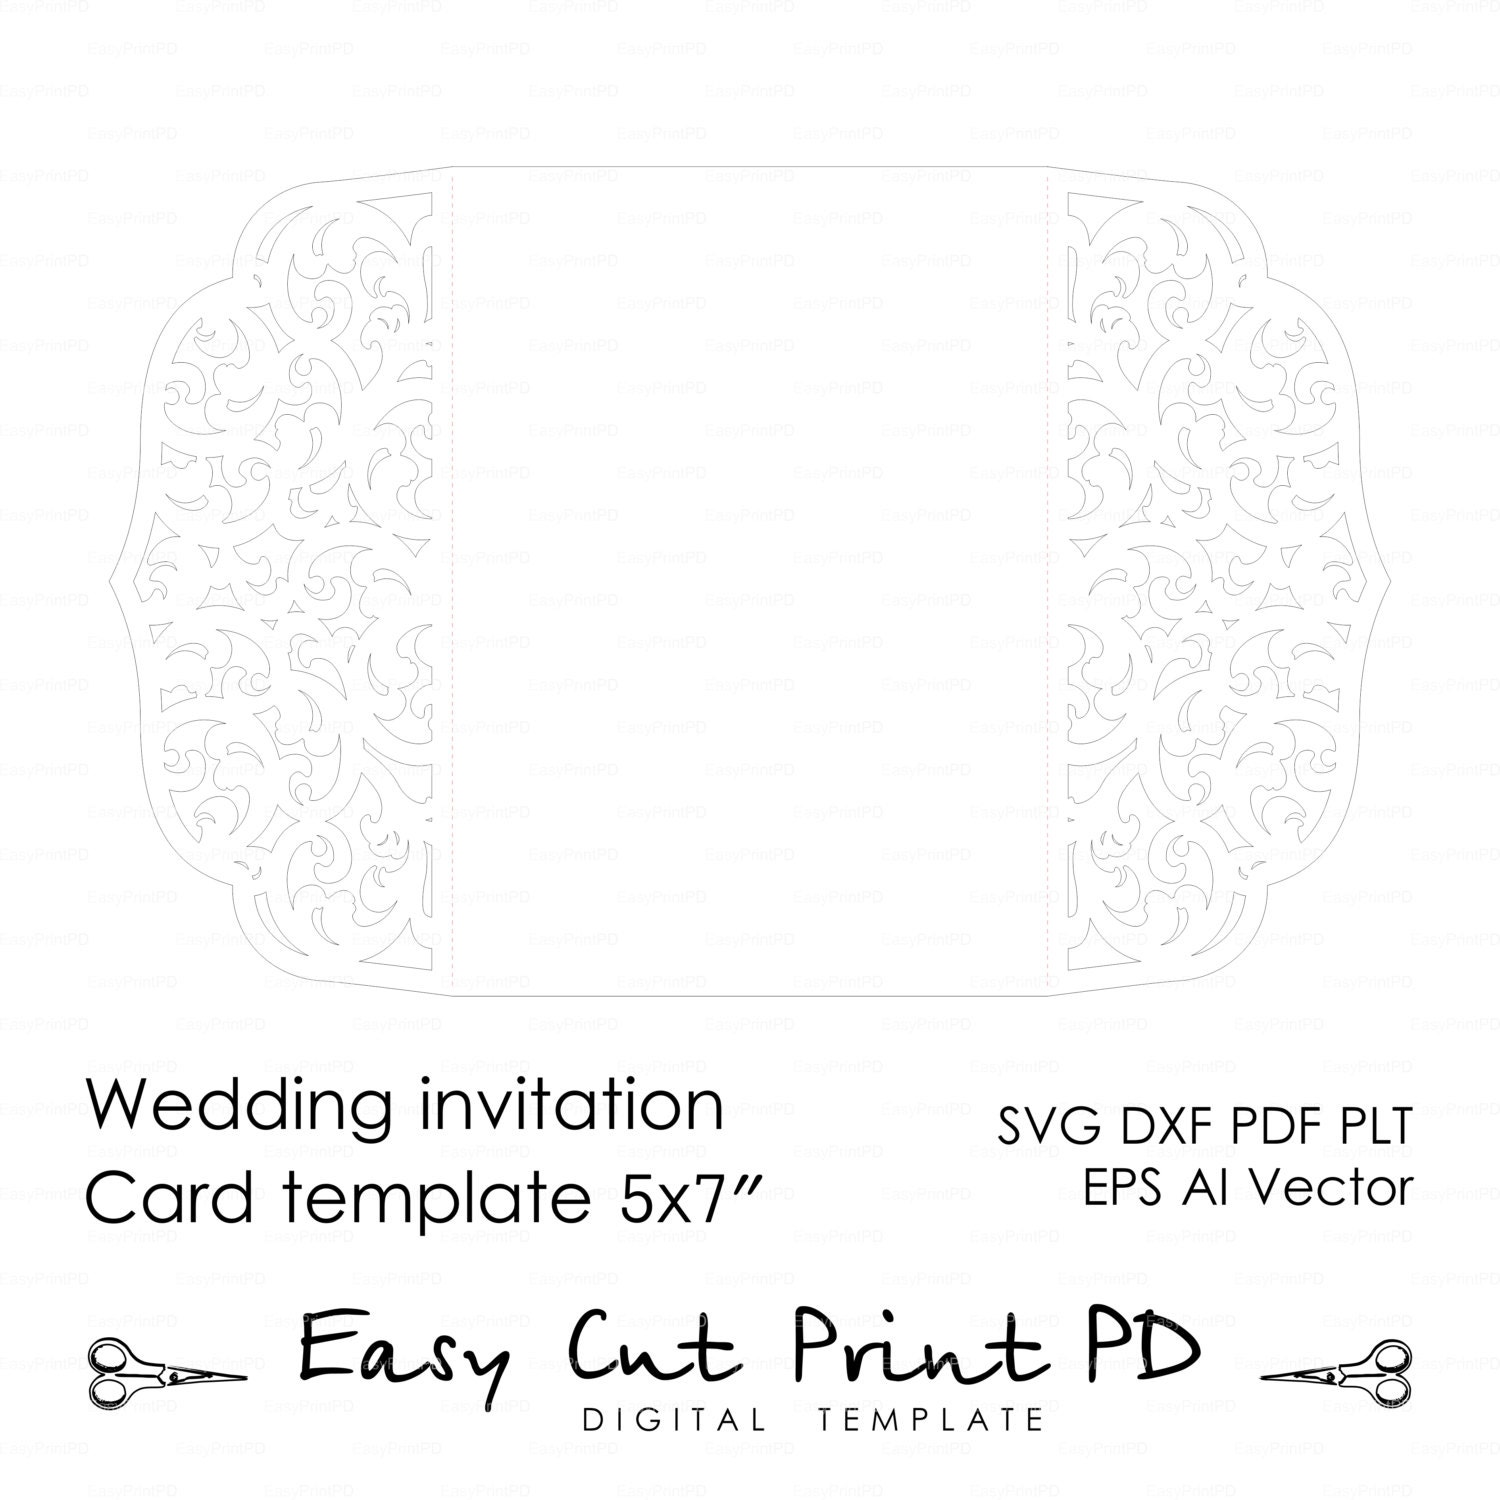 wedding invitation pattern card 5x7 template by easycutprintpd. Black Bedroom Furniture Sets. Home Design Ideas